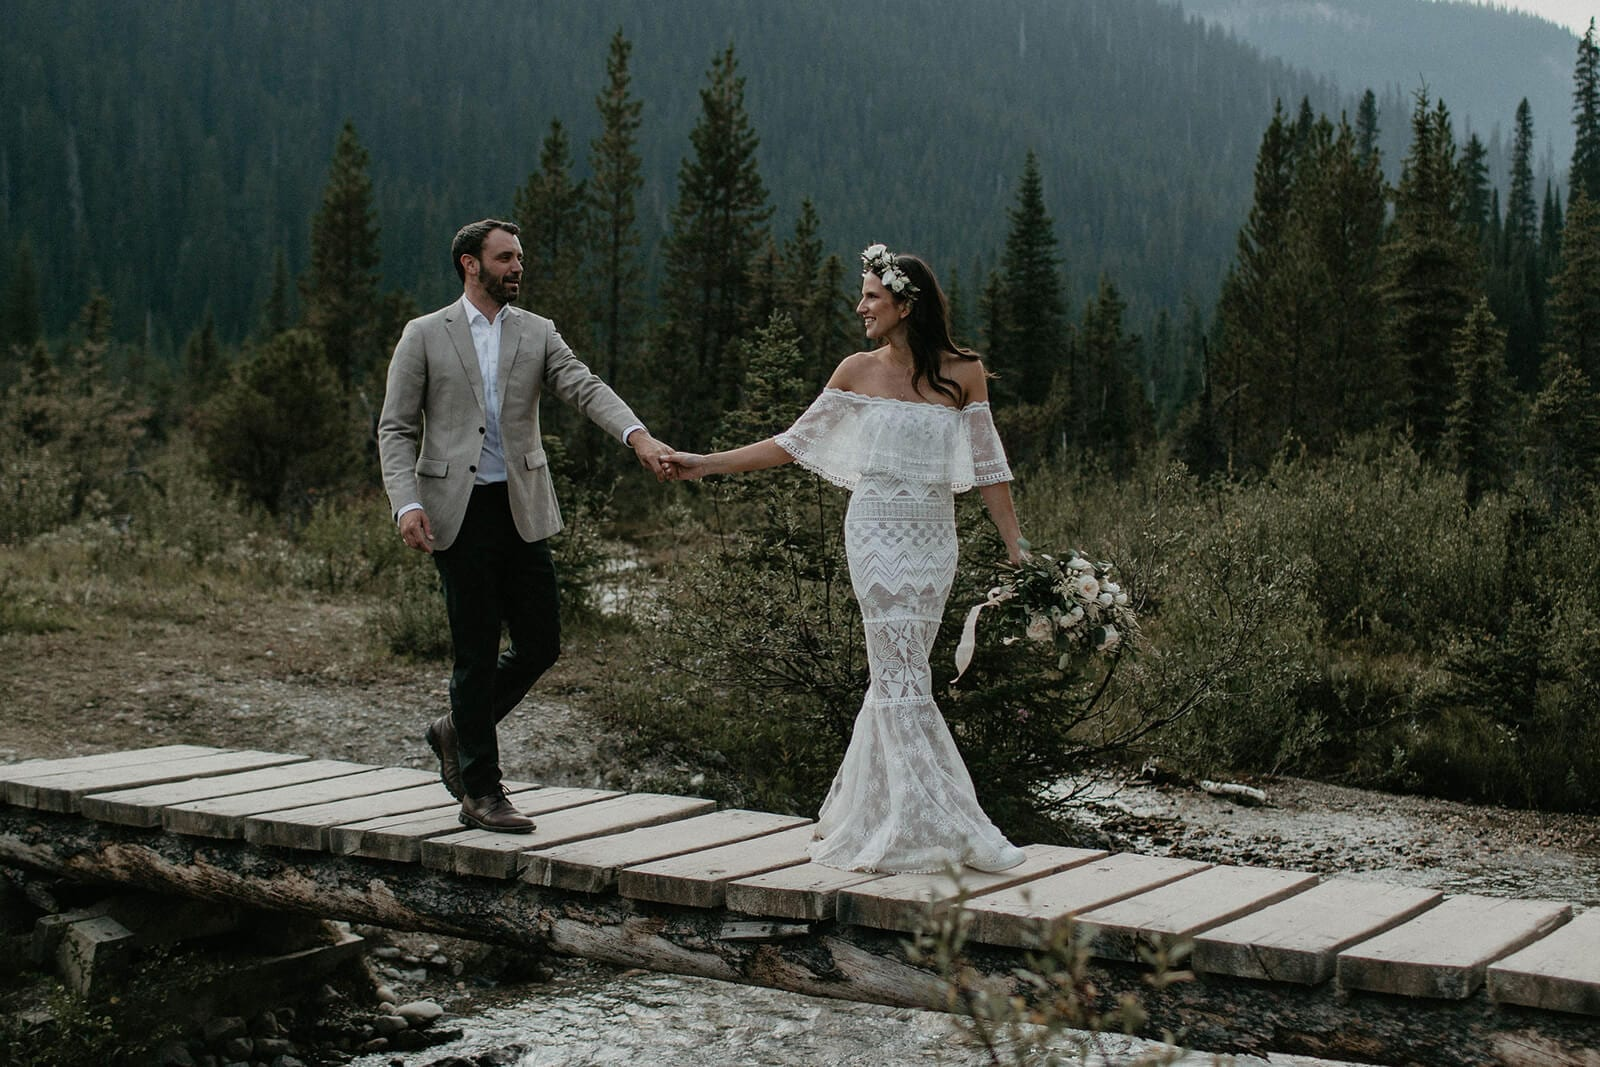 Brunette bride wearing Grace Loves Lace Emanuela Gown holding bouquet walking with groom on narrow bridge over water